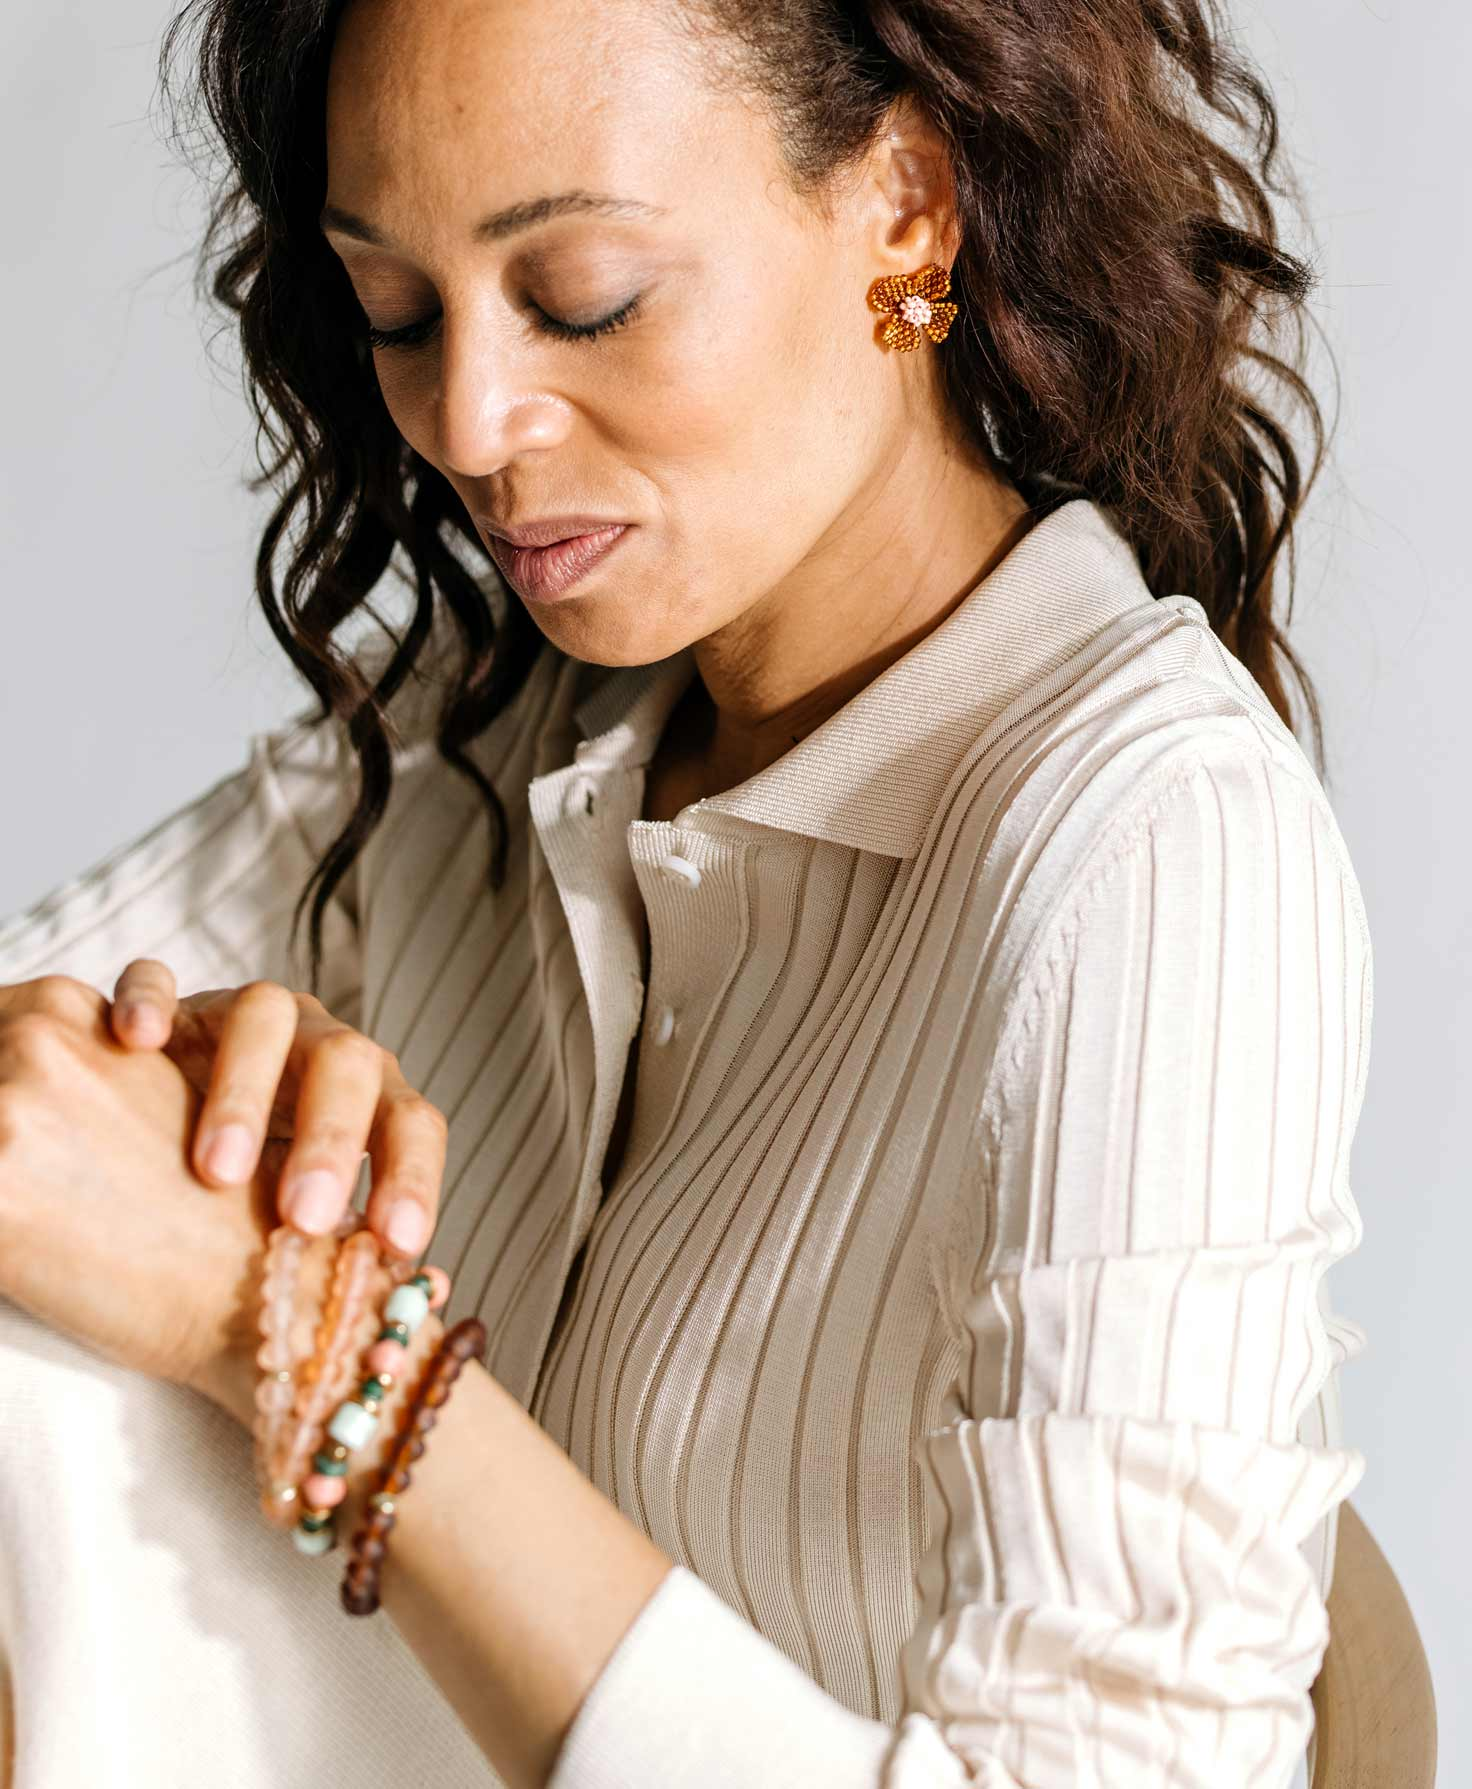 A model wears the Posy Bracelet layered with three glass bracelets from the Bracelet Bar in complementary shades of brown and pink. She also wears the Trellis Earrings, which feature a similar color palette.